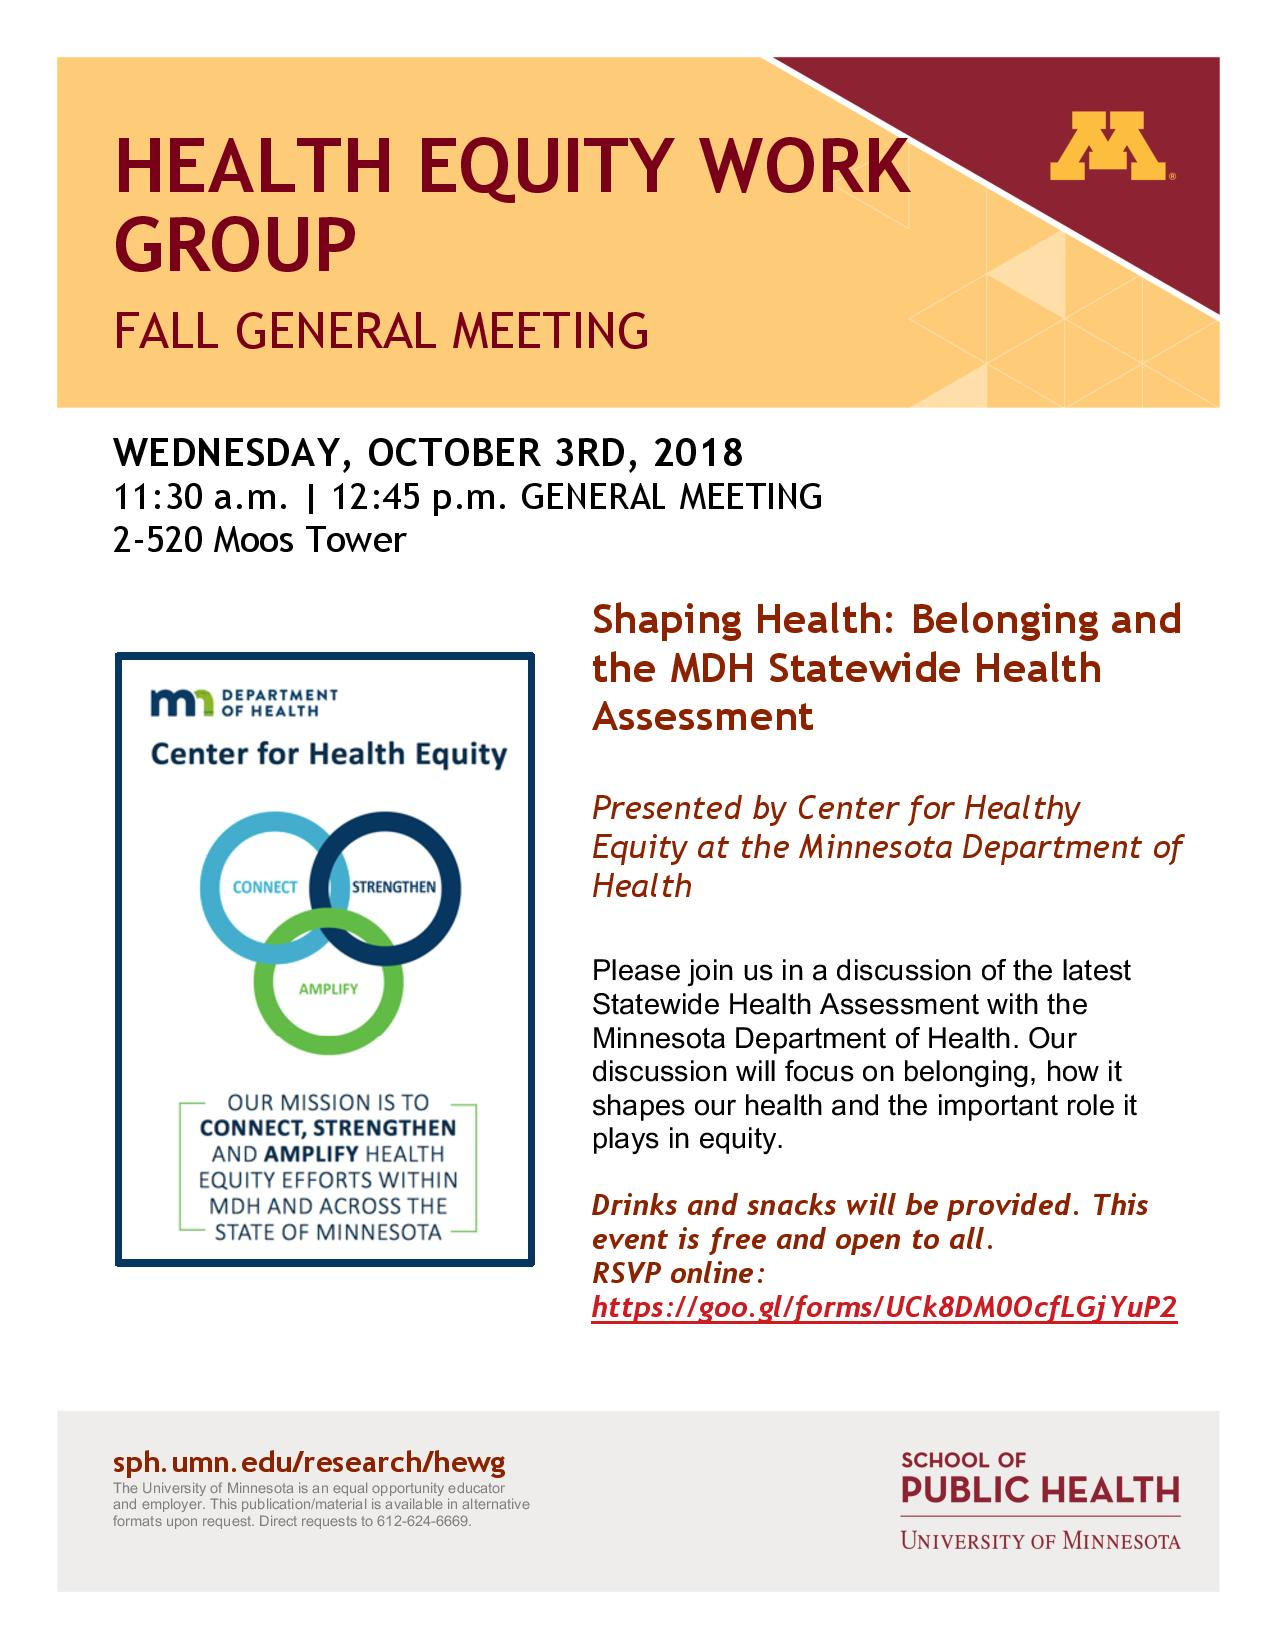 Welcome: HEWG Fall General Meeting! - School of Public Health